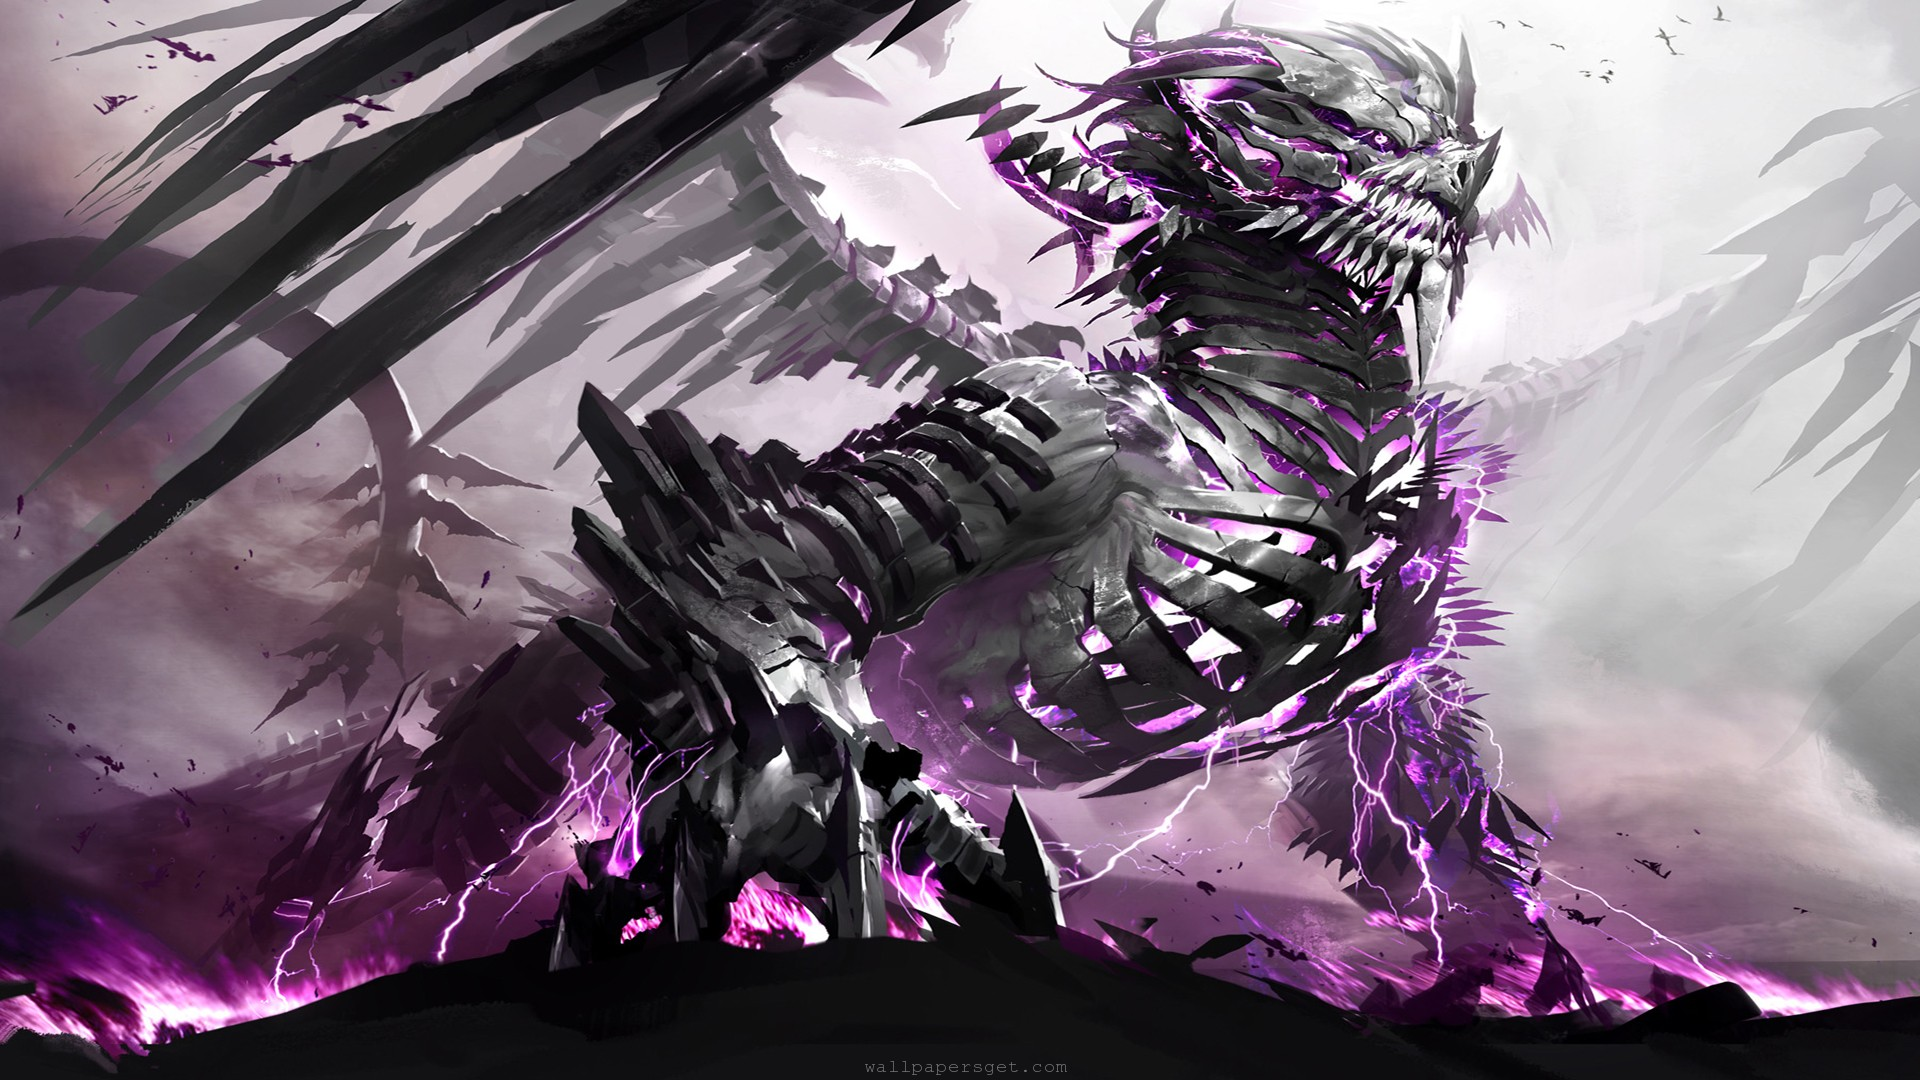 Purple Dragon HD Desktop Wallpaper HD Desktop Wallpaper 1920x1080